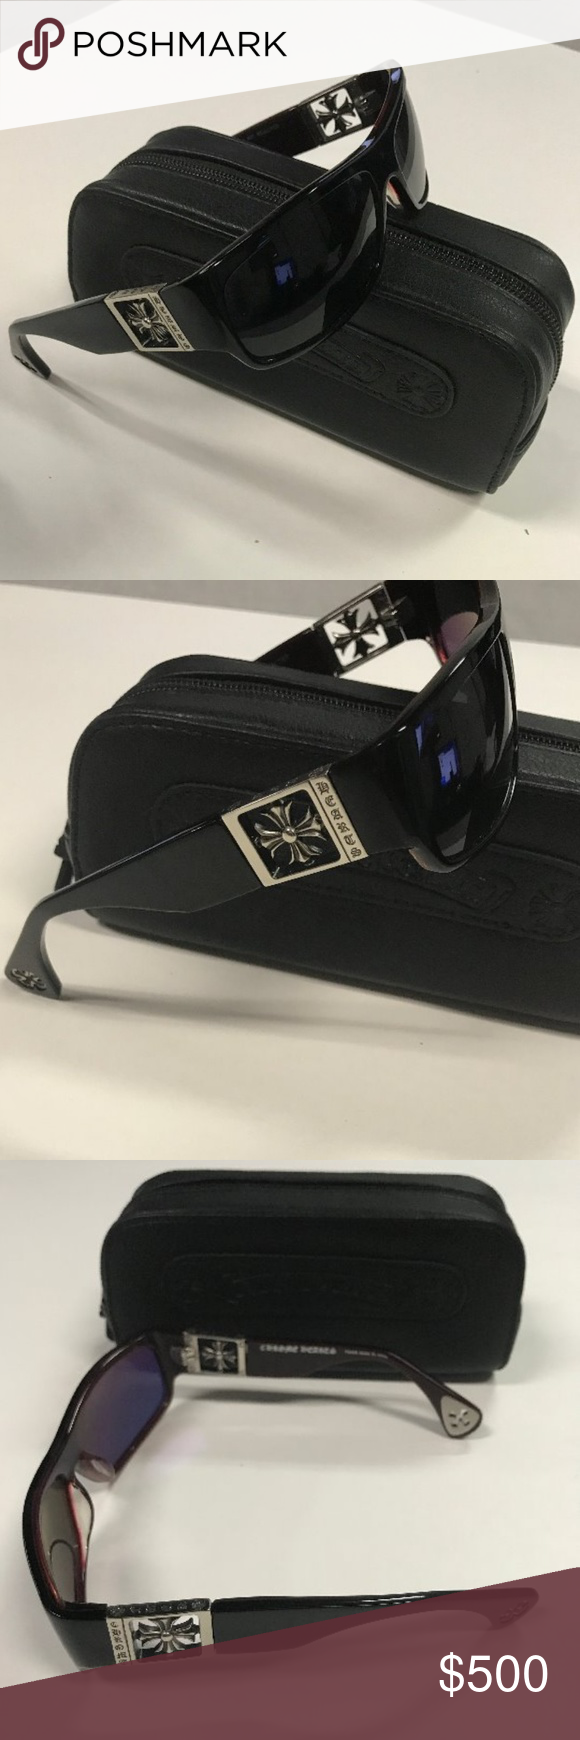 da50de9421bc Chrome Hearts Mens Sunglasses Rejected Black Purchased from Aspen Optical  boutique in Las Vegas. Chrome